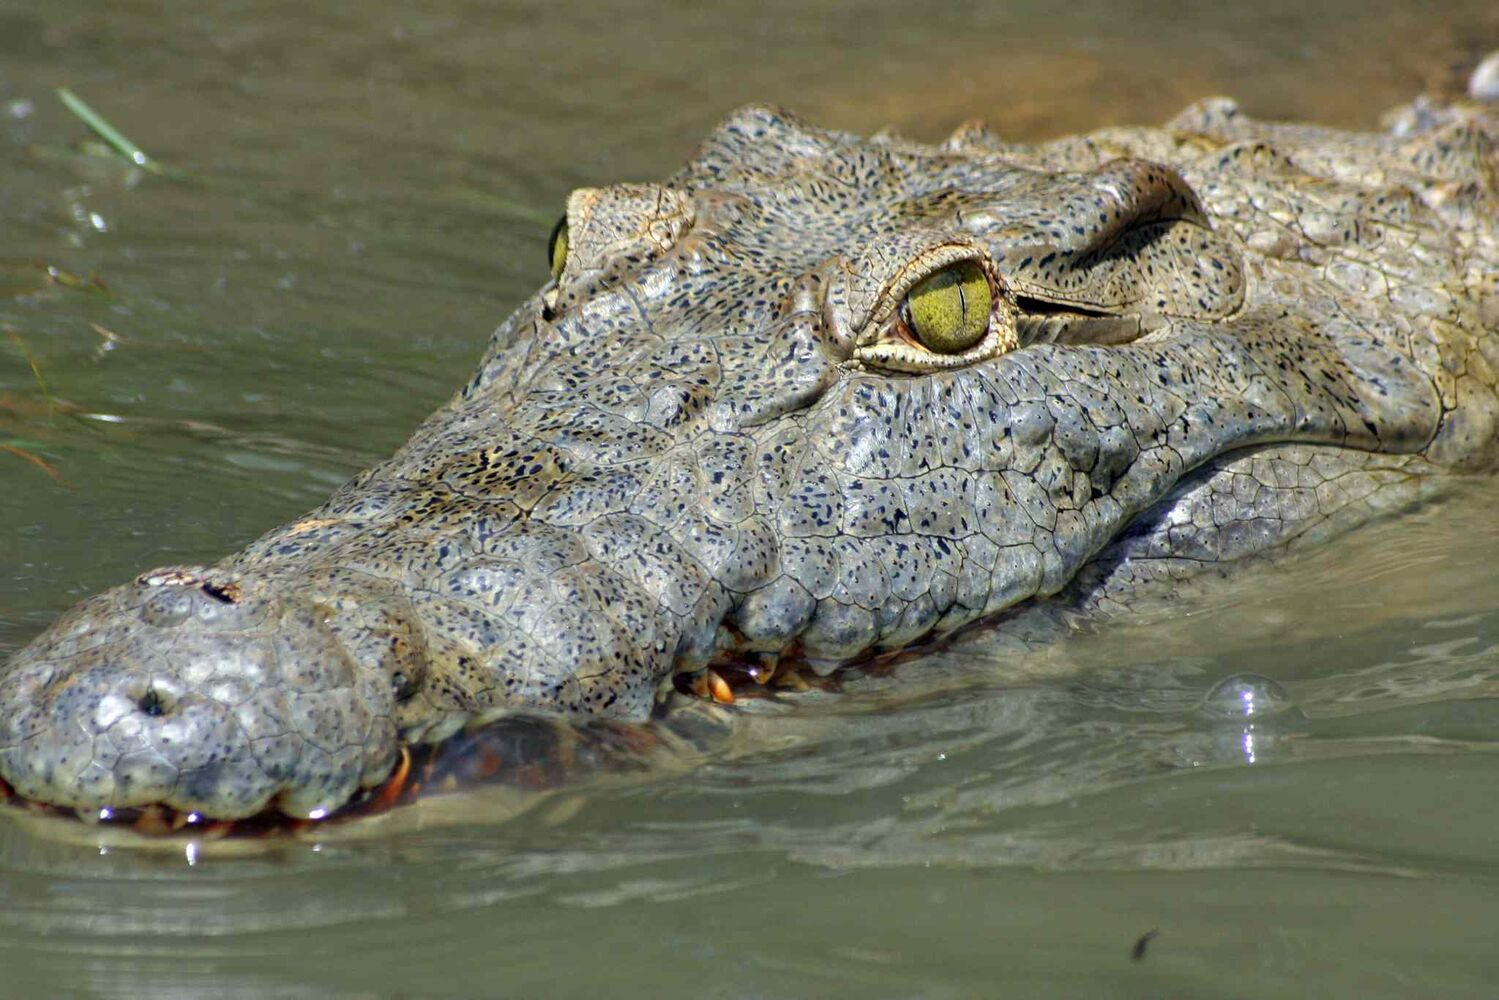 10. (j) all members of the order Crocodylia, including, but not limited to, alligator, caiman and crocodile.